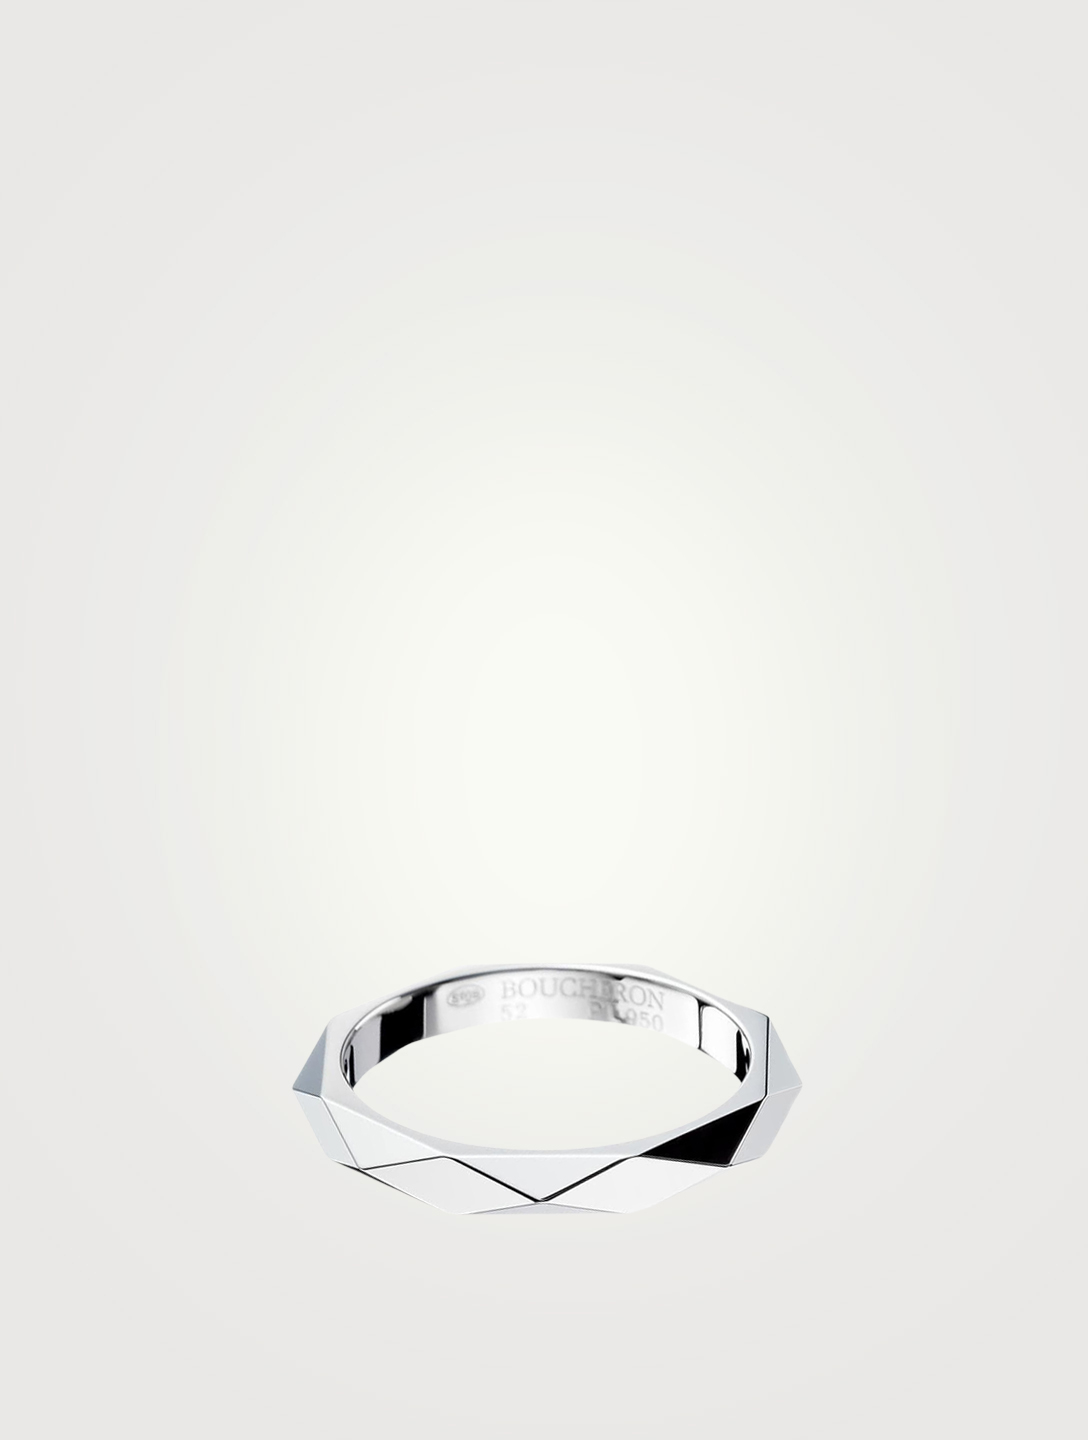 BOUCHERON Facette Platinum Wedding Band Women's Metallic